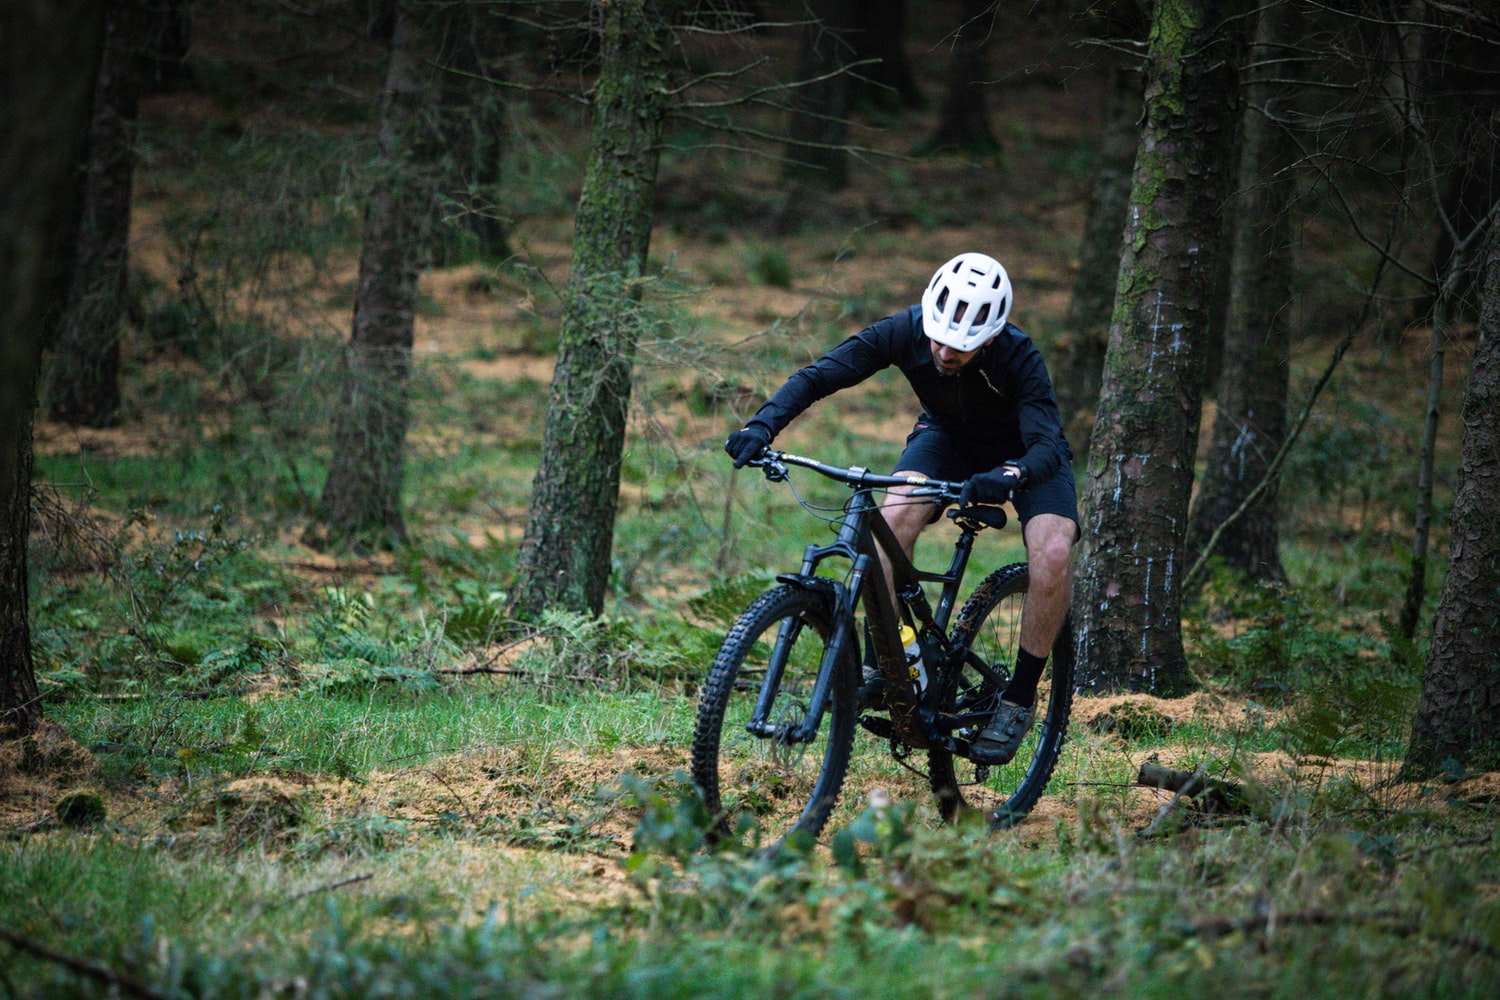 Man in the forest riding a bike